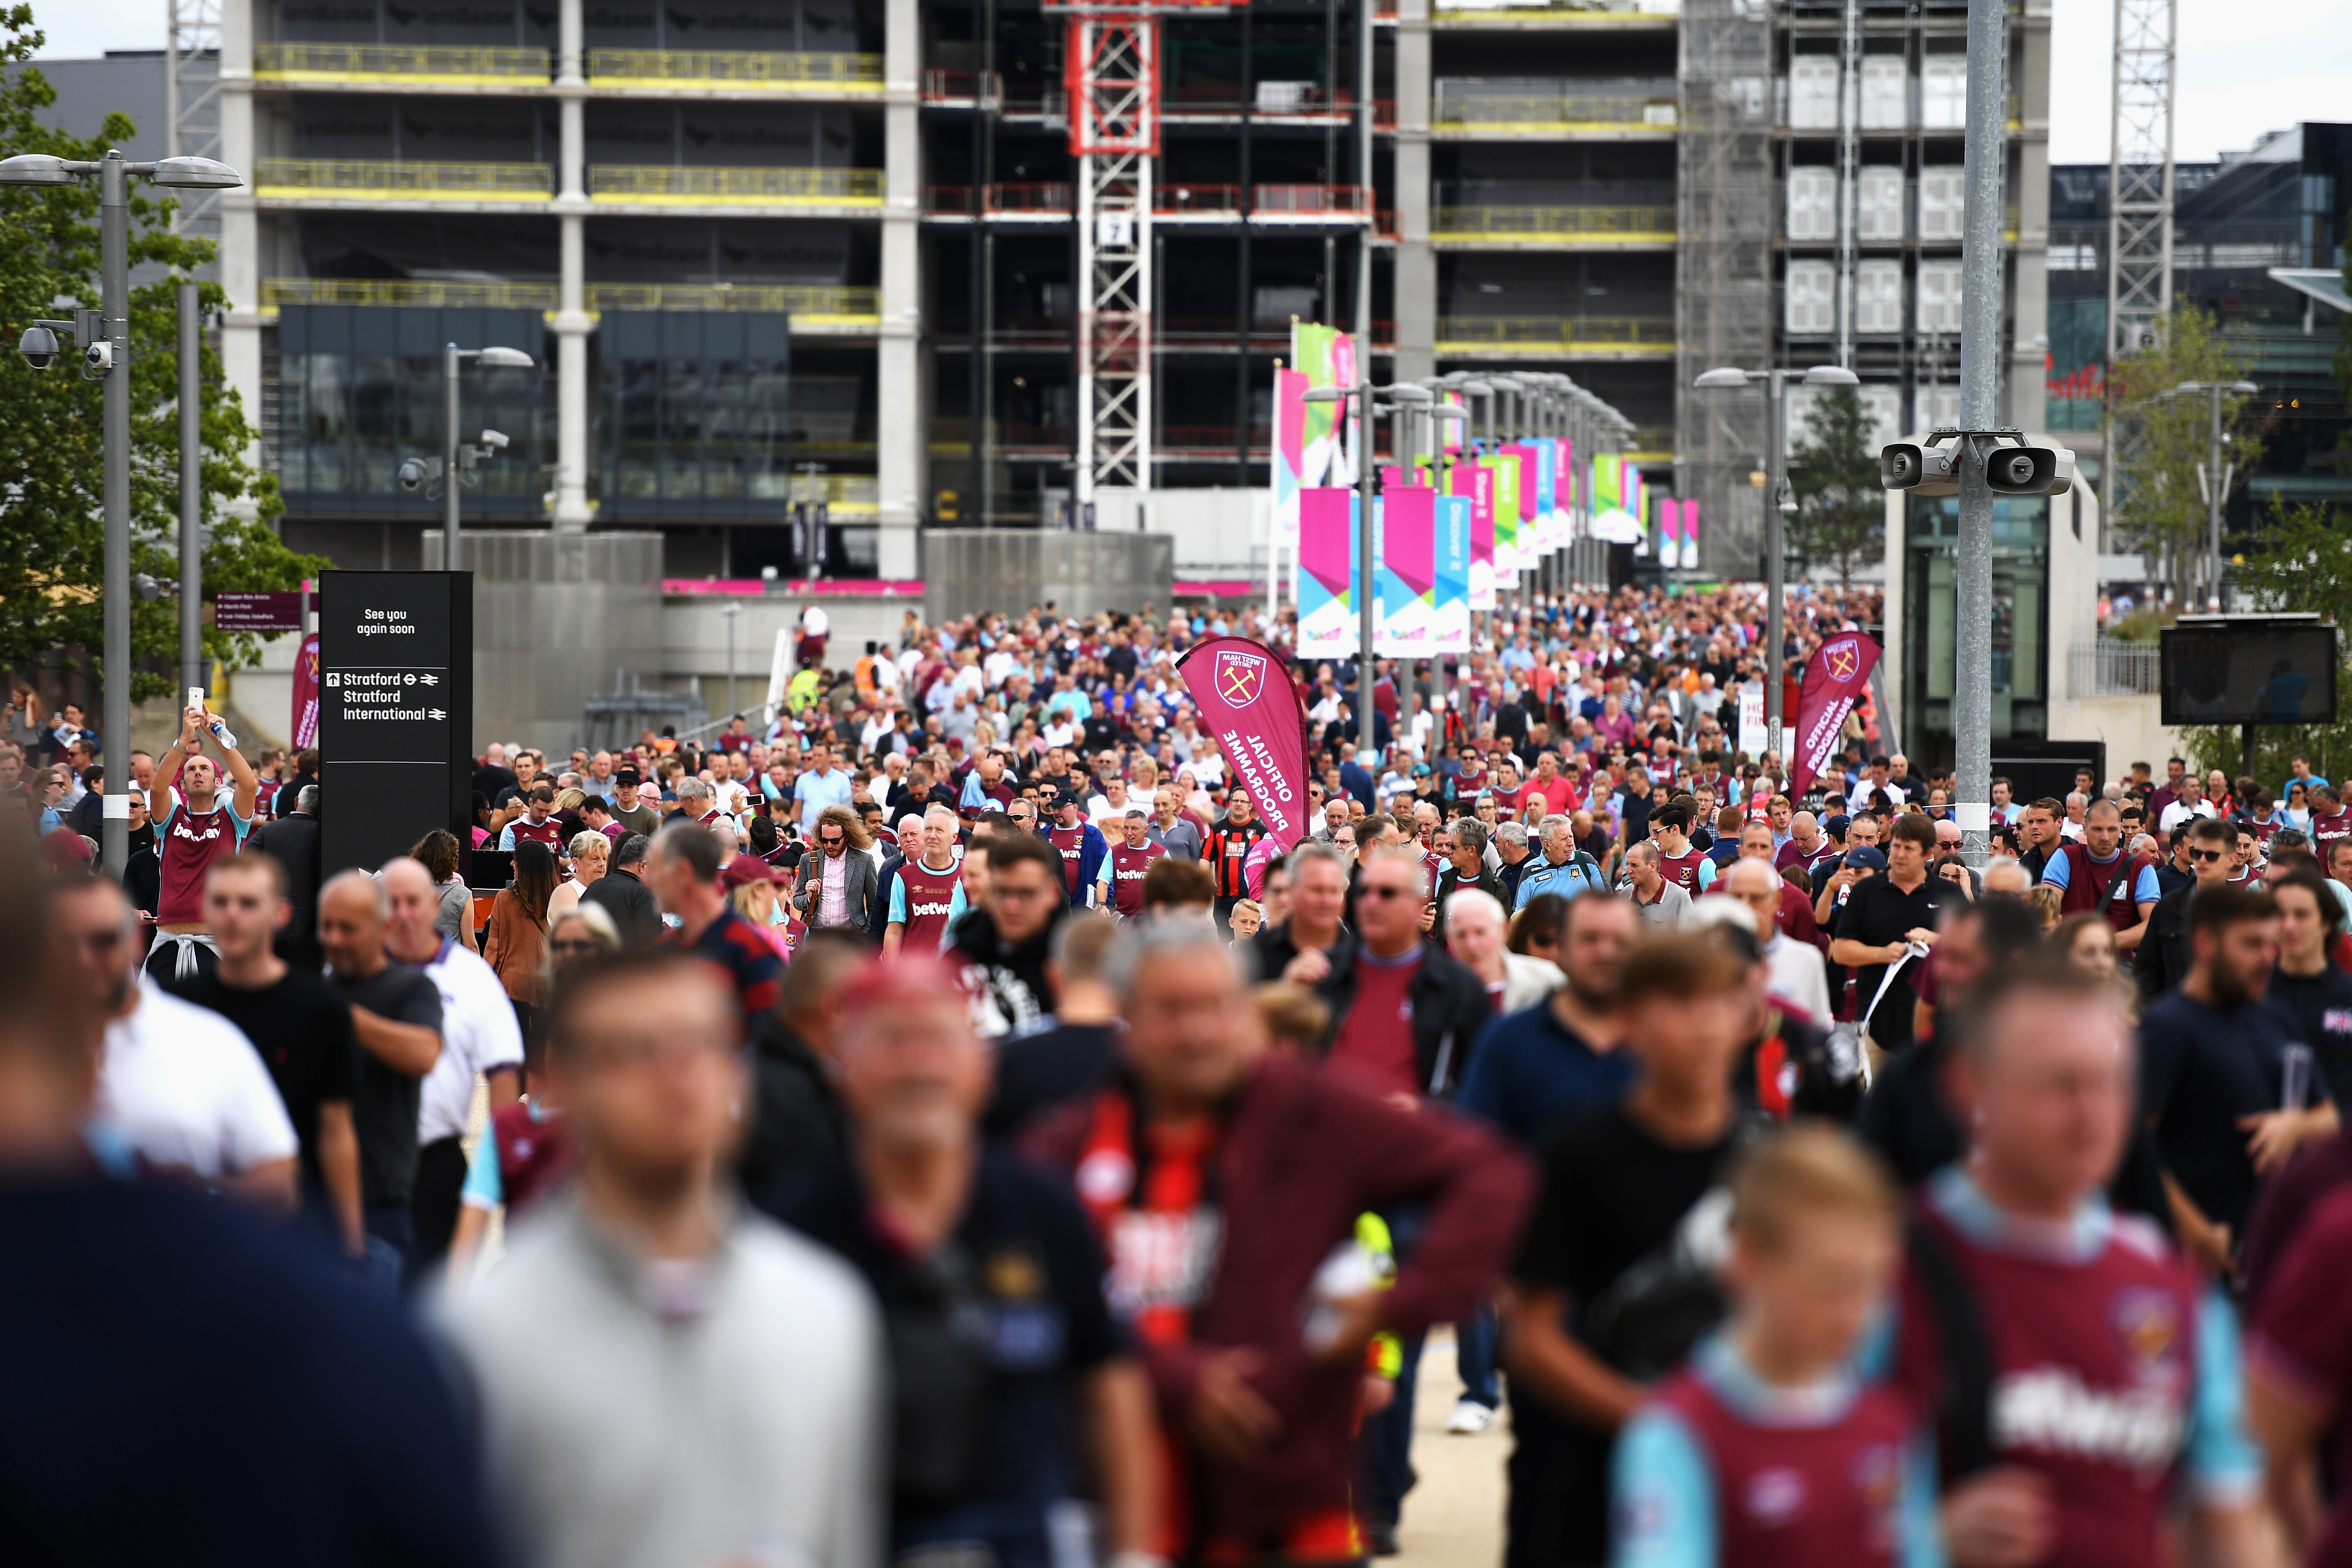 LONDON, ENGLAND - AUGUST 21: Fans walk towards the stadium prior to the Premier League match between West Ham United and AFC Bournemouth at London Stadium on August 21, 2016 in London, England. (Photo by Mike Hewitt/Getty Images)